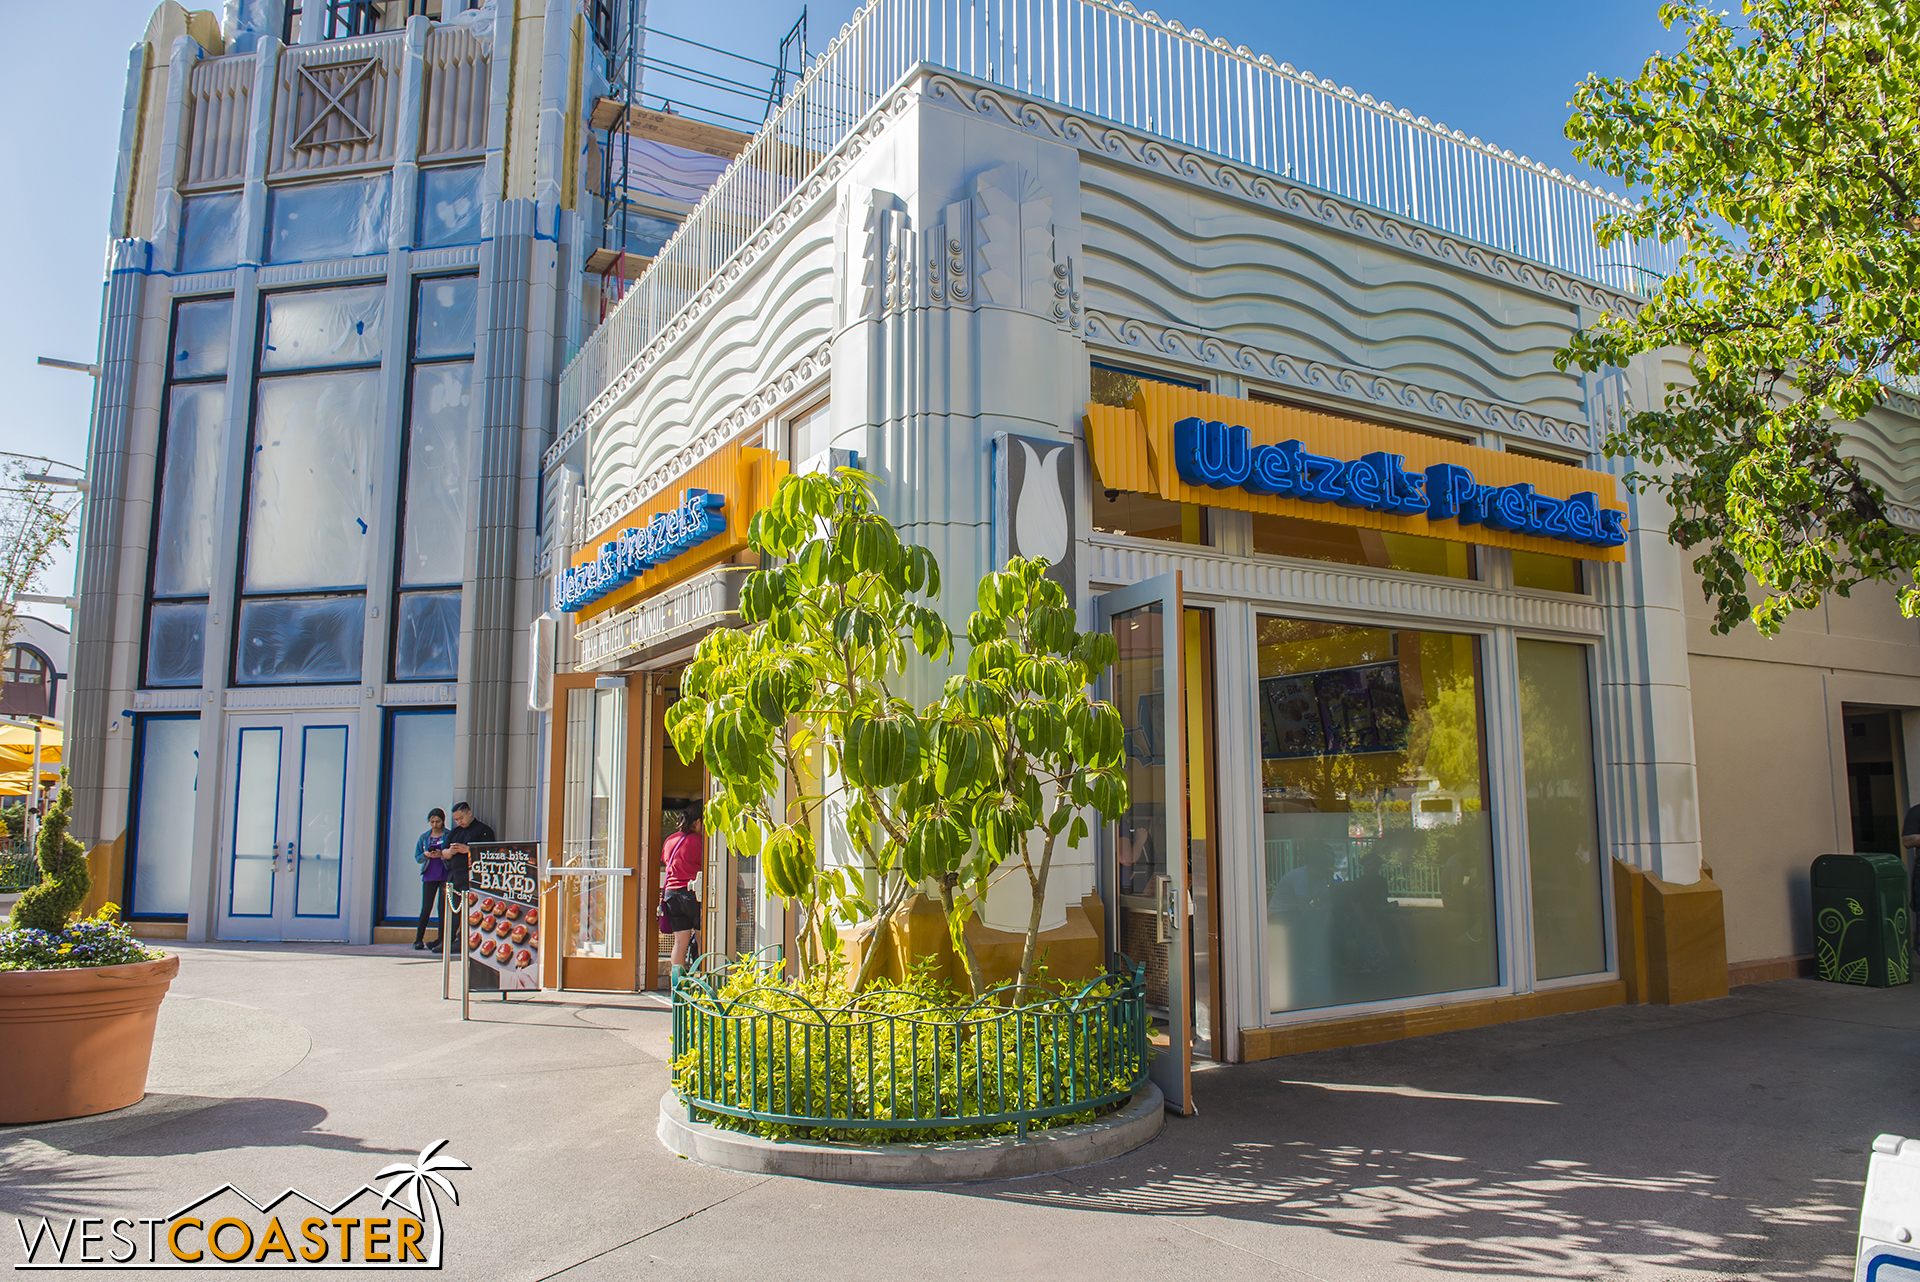 Wetzel's is getting the treatment too.